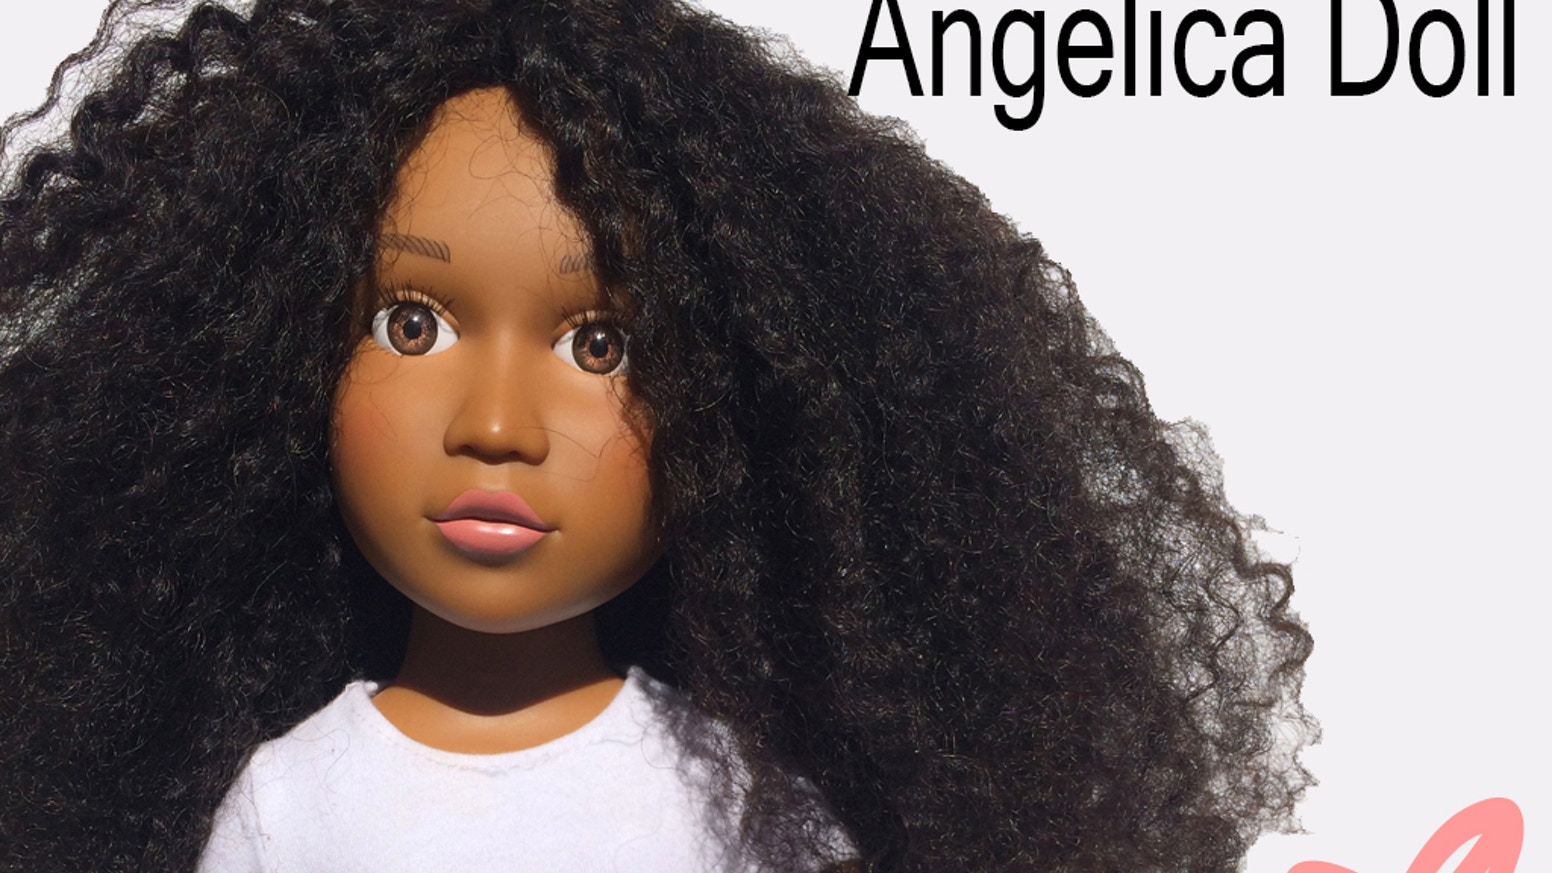 Finally, a beautiful 18-inch vinyl doll with facial features true to women of color and hair you can style/wash as natural hair.